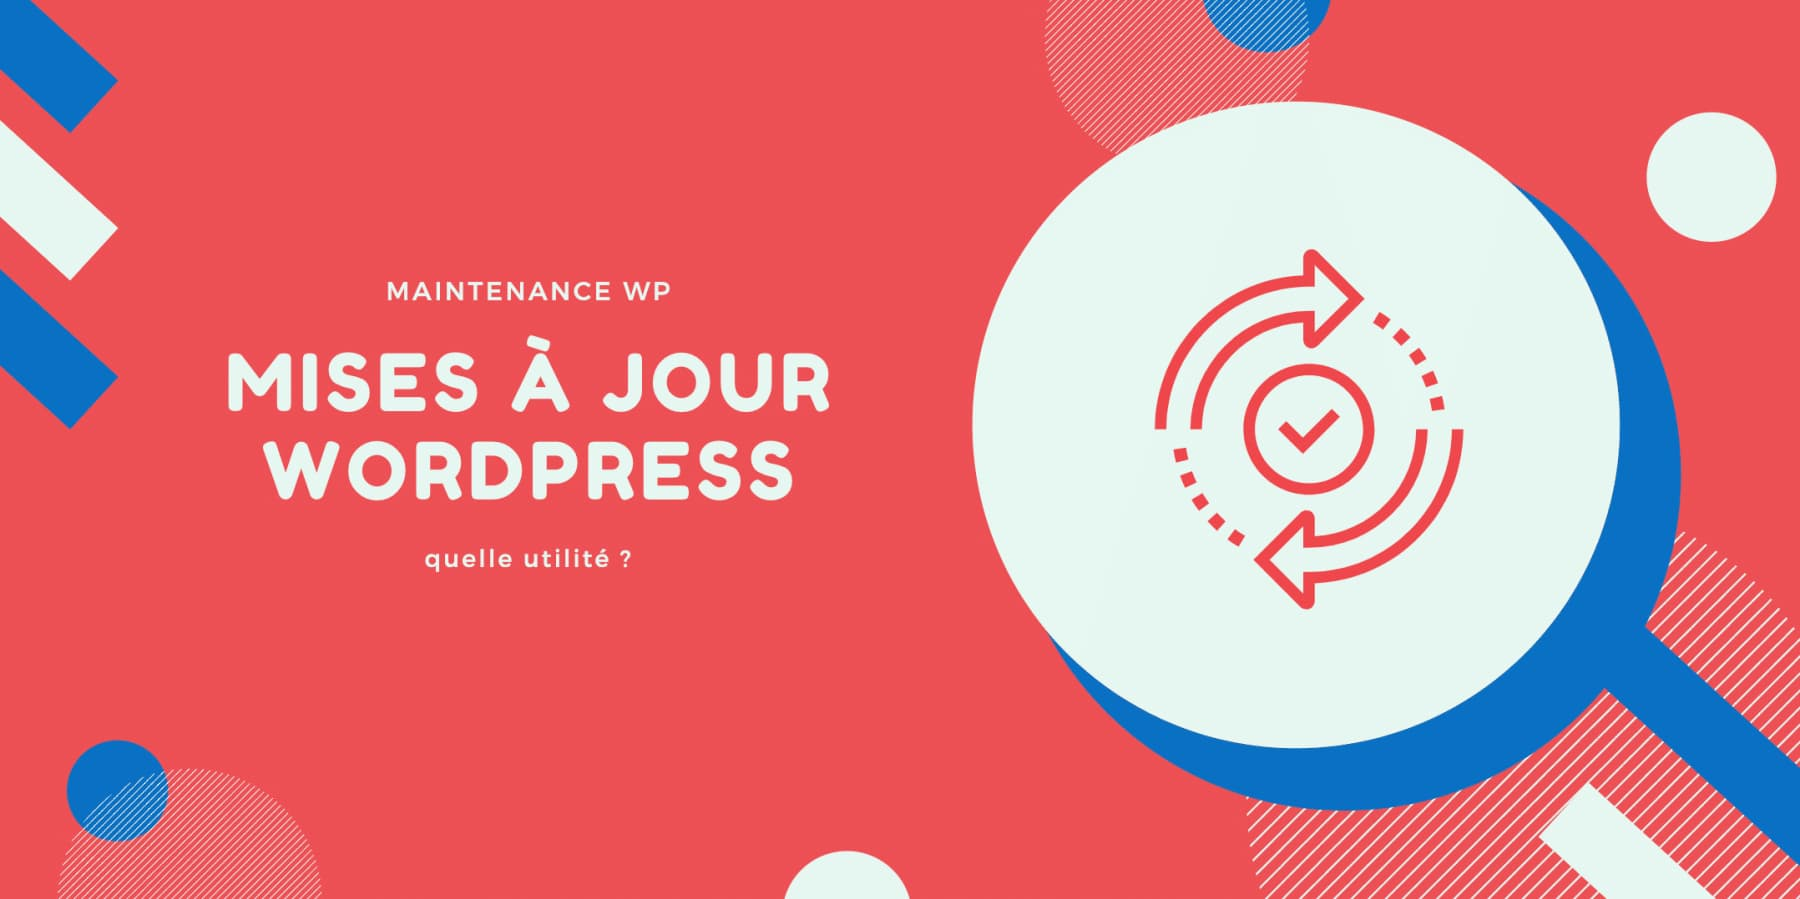 mises à jour WordPress - Maintenance WP